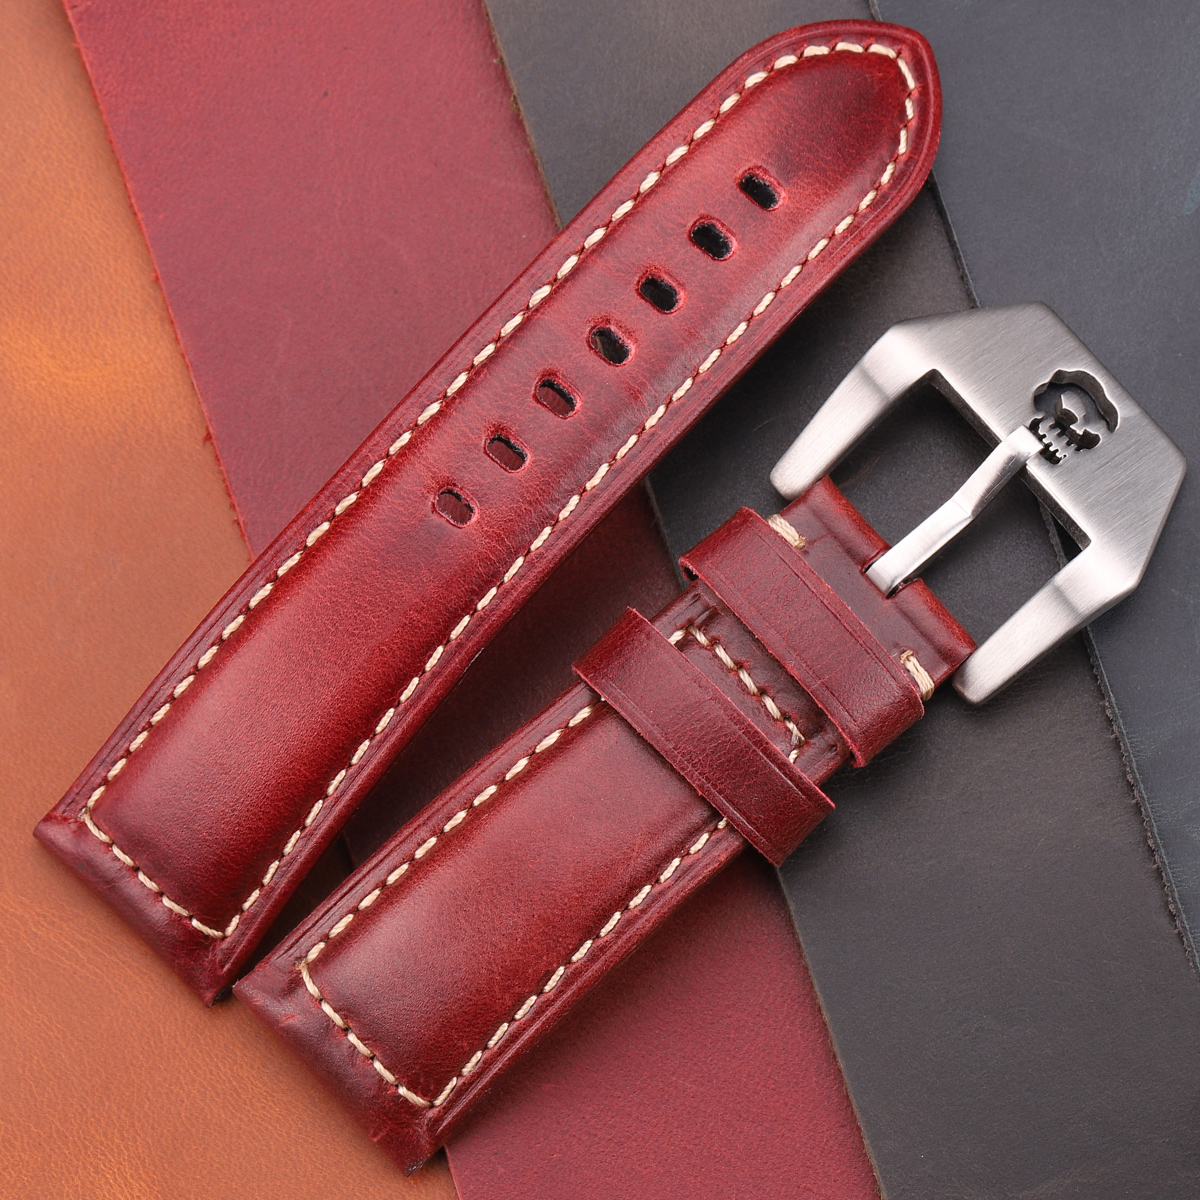 Vintage Watchbands 22 24 26mm Cow Leather Strap Watch Band Red Blue Green Brown Watch Accessories For Panerai Watch(China)